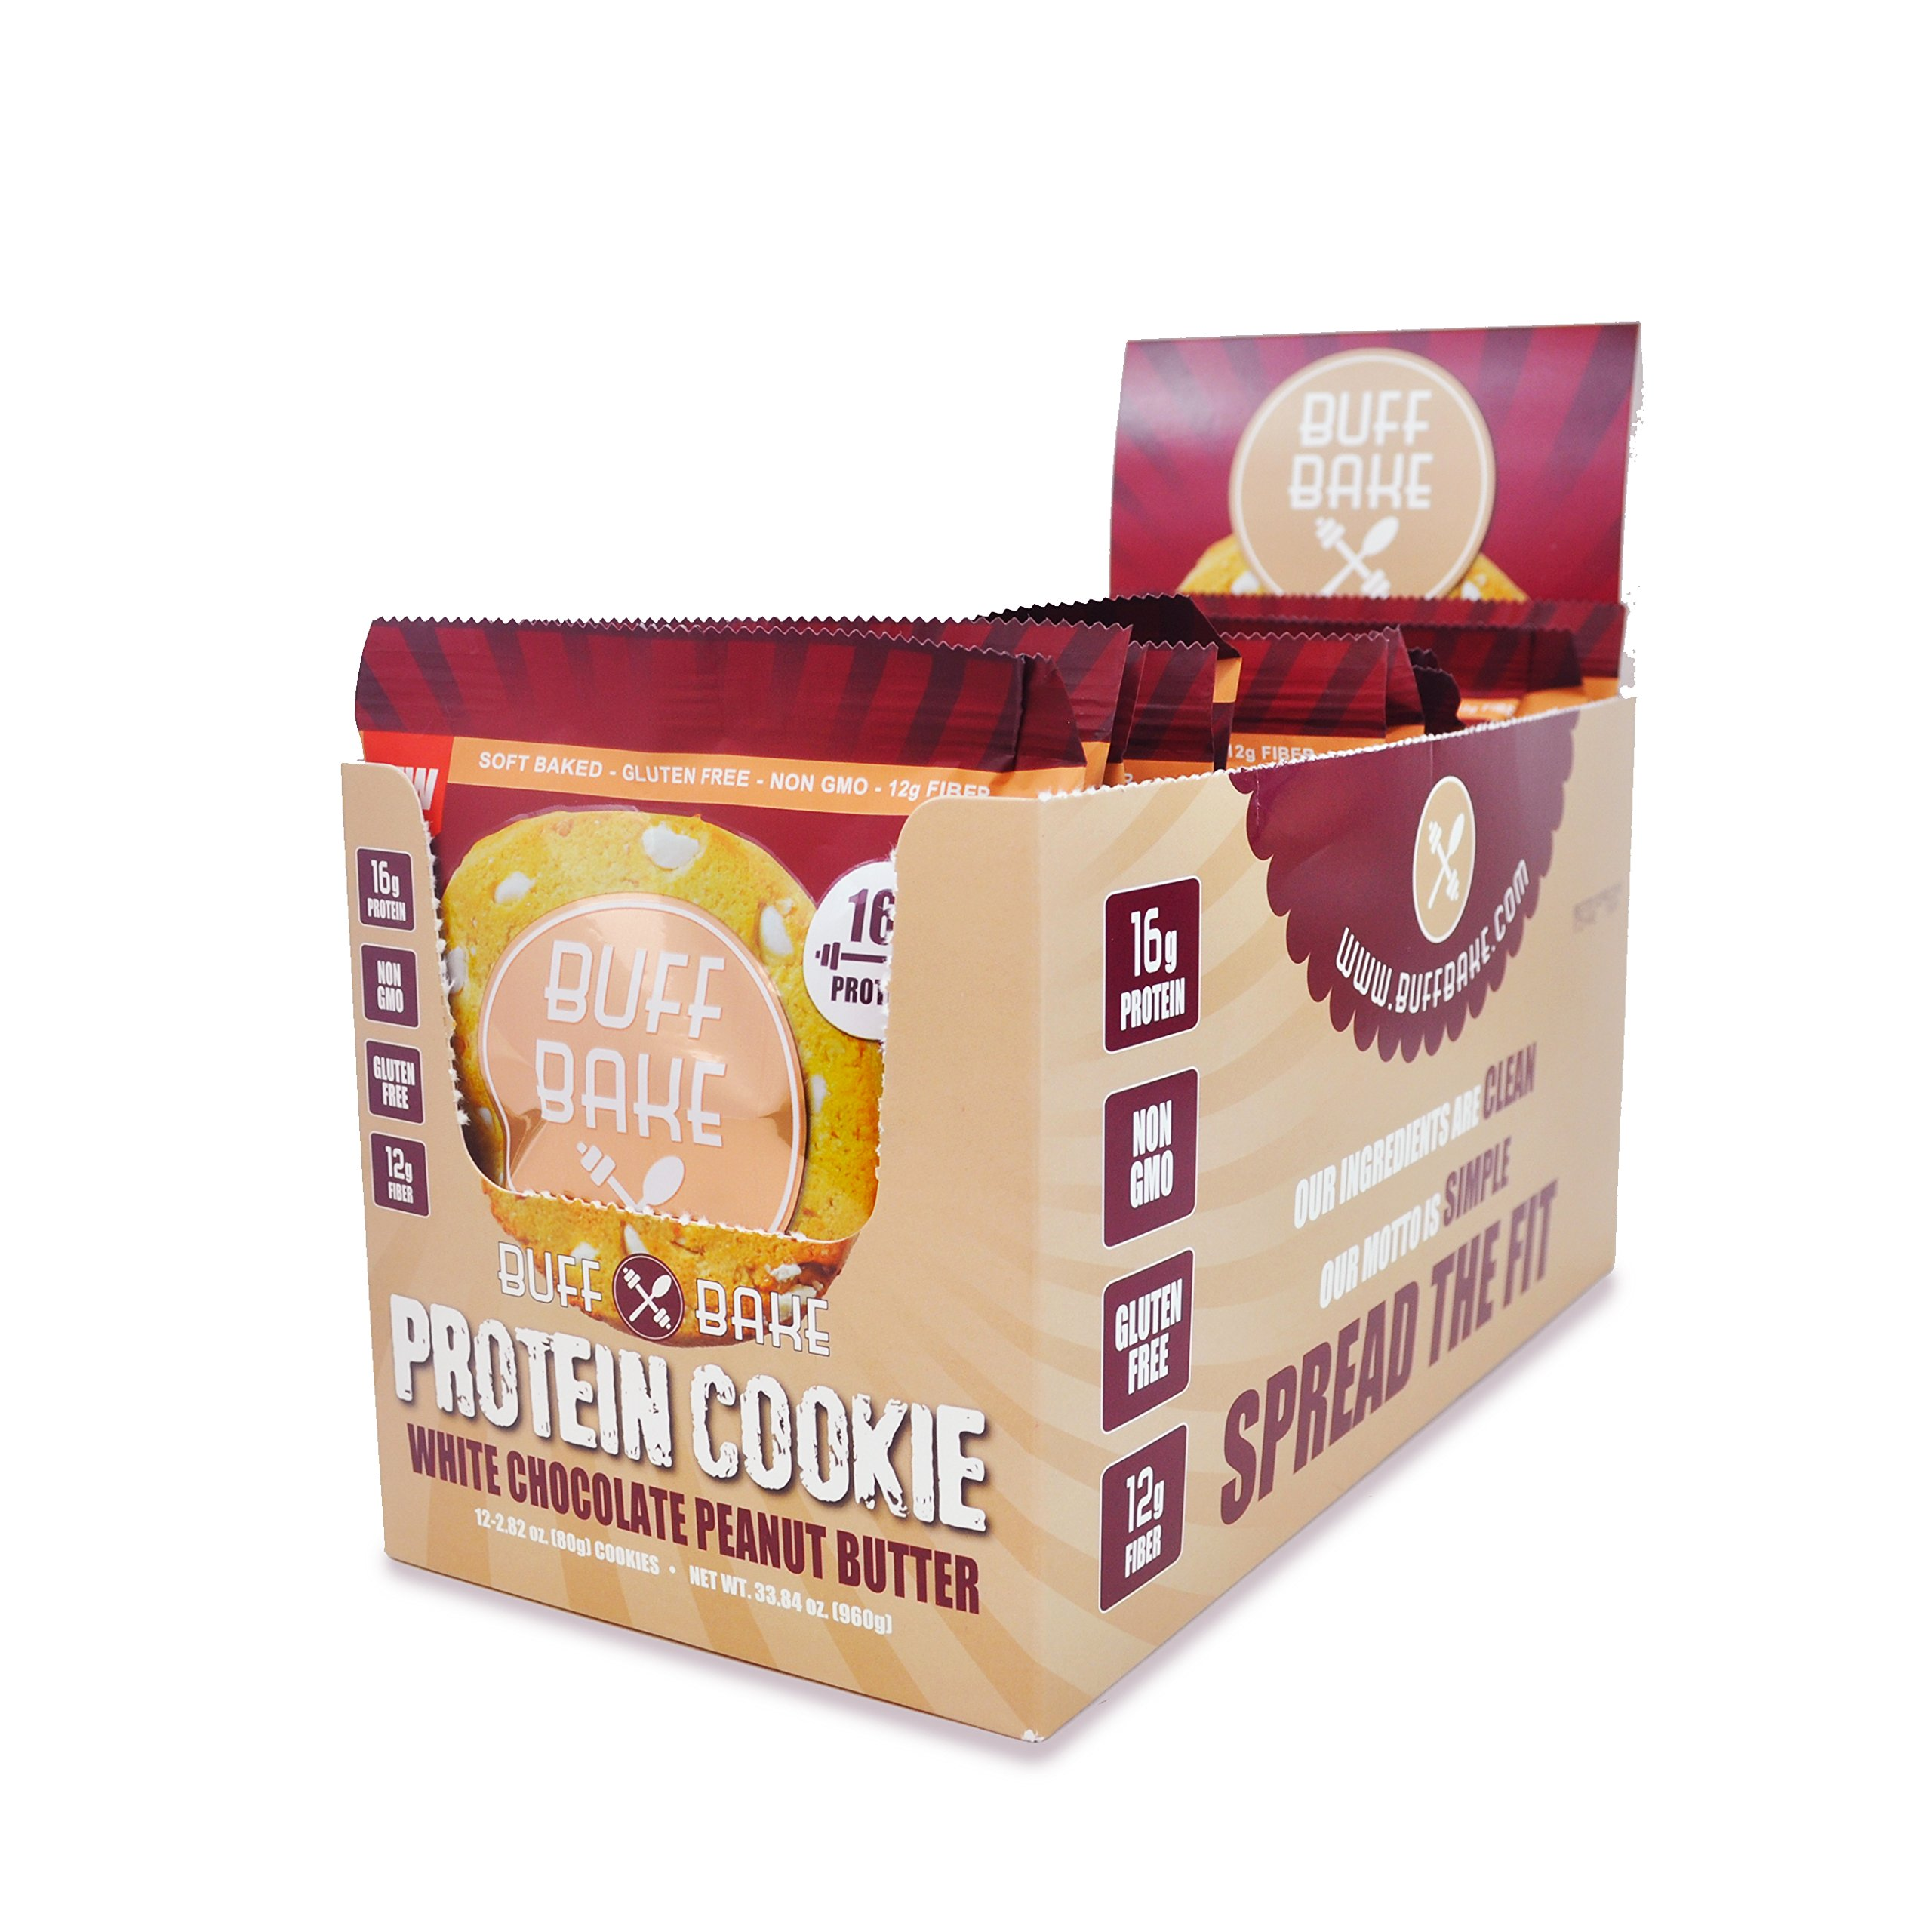 Buff Bake Gluten Free White Chocolate Peanut Butter Cookie, 12 Count